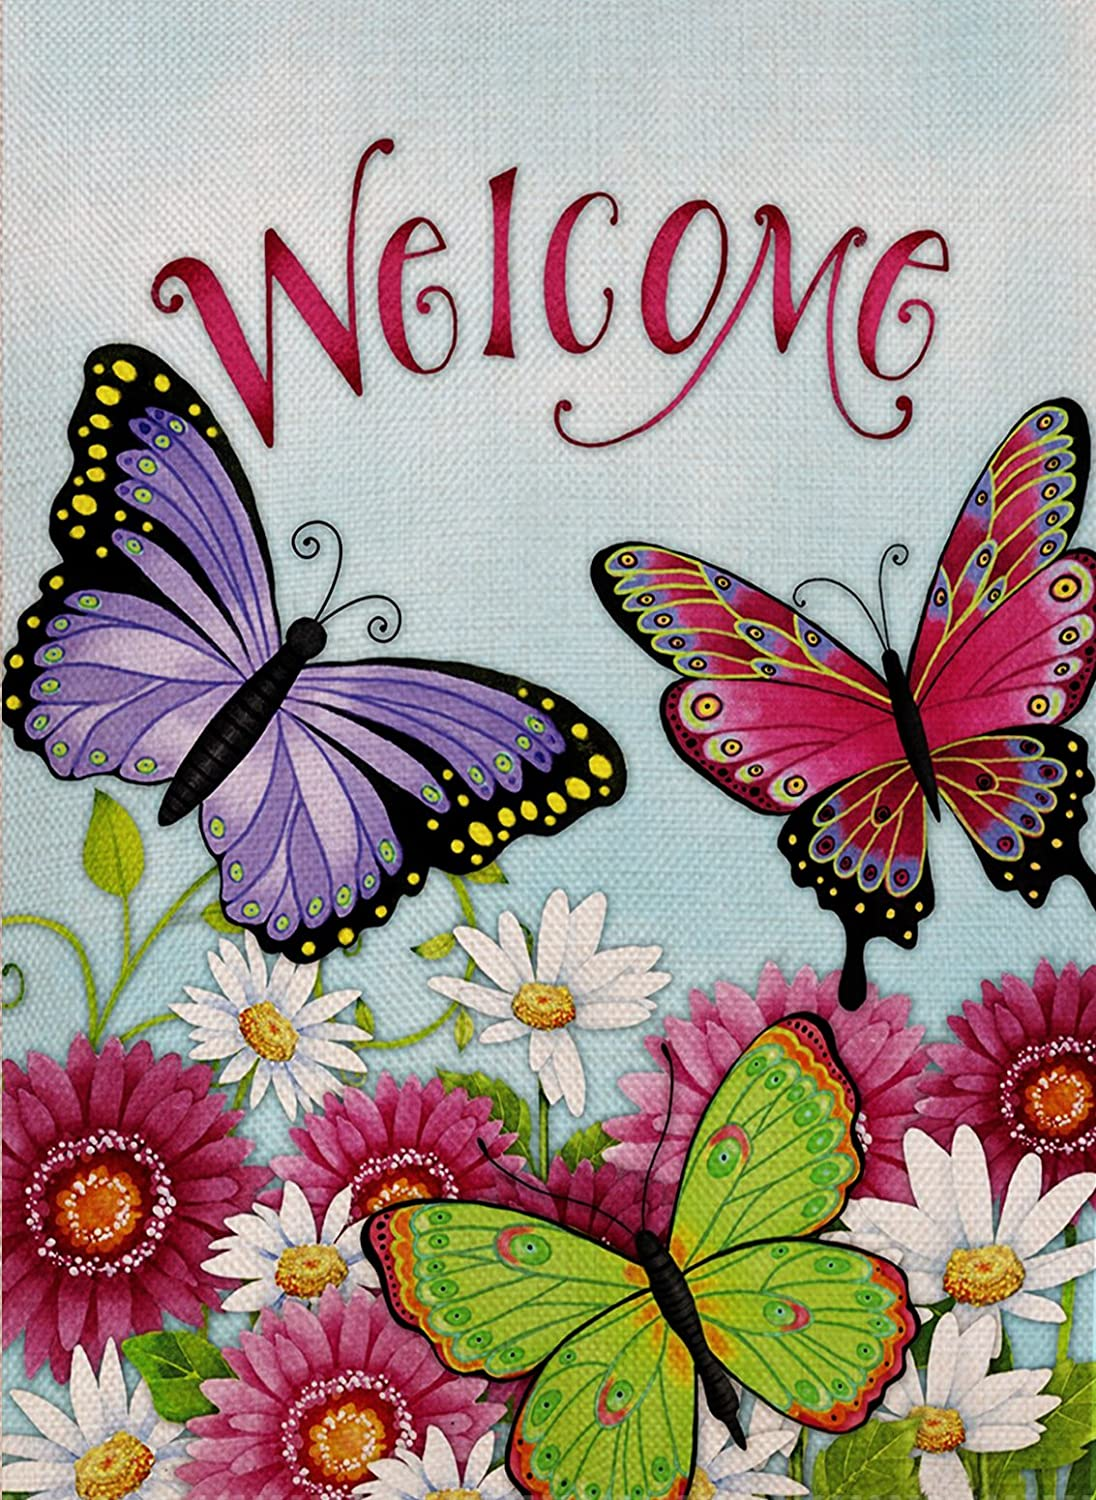 Dyrenson Butterfly Garden Flag Welcome Quote Double Sided, Flower House Yard Flag Daisies, Summer and Spring Sunflowers Garden Yard Decoration, Home Decorative Seasonal Outdoor Flag 12 x 18